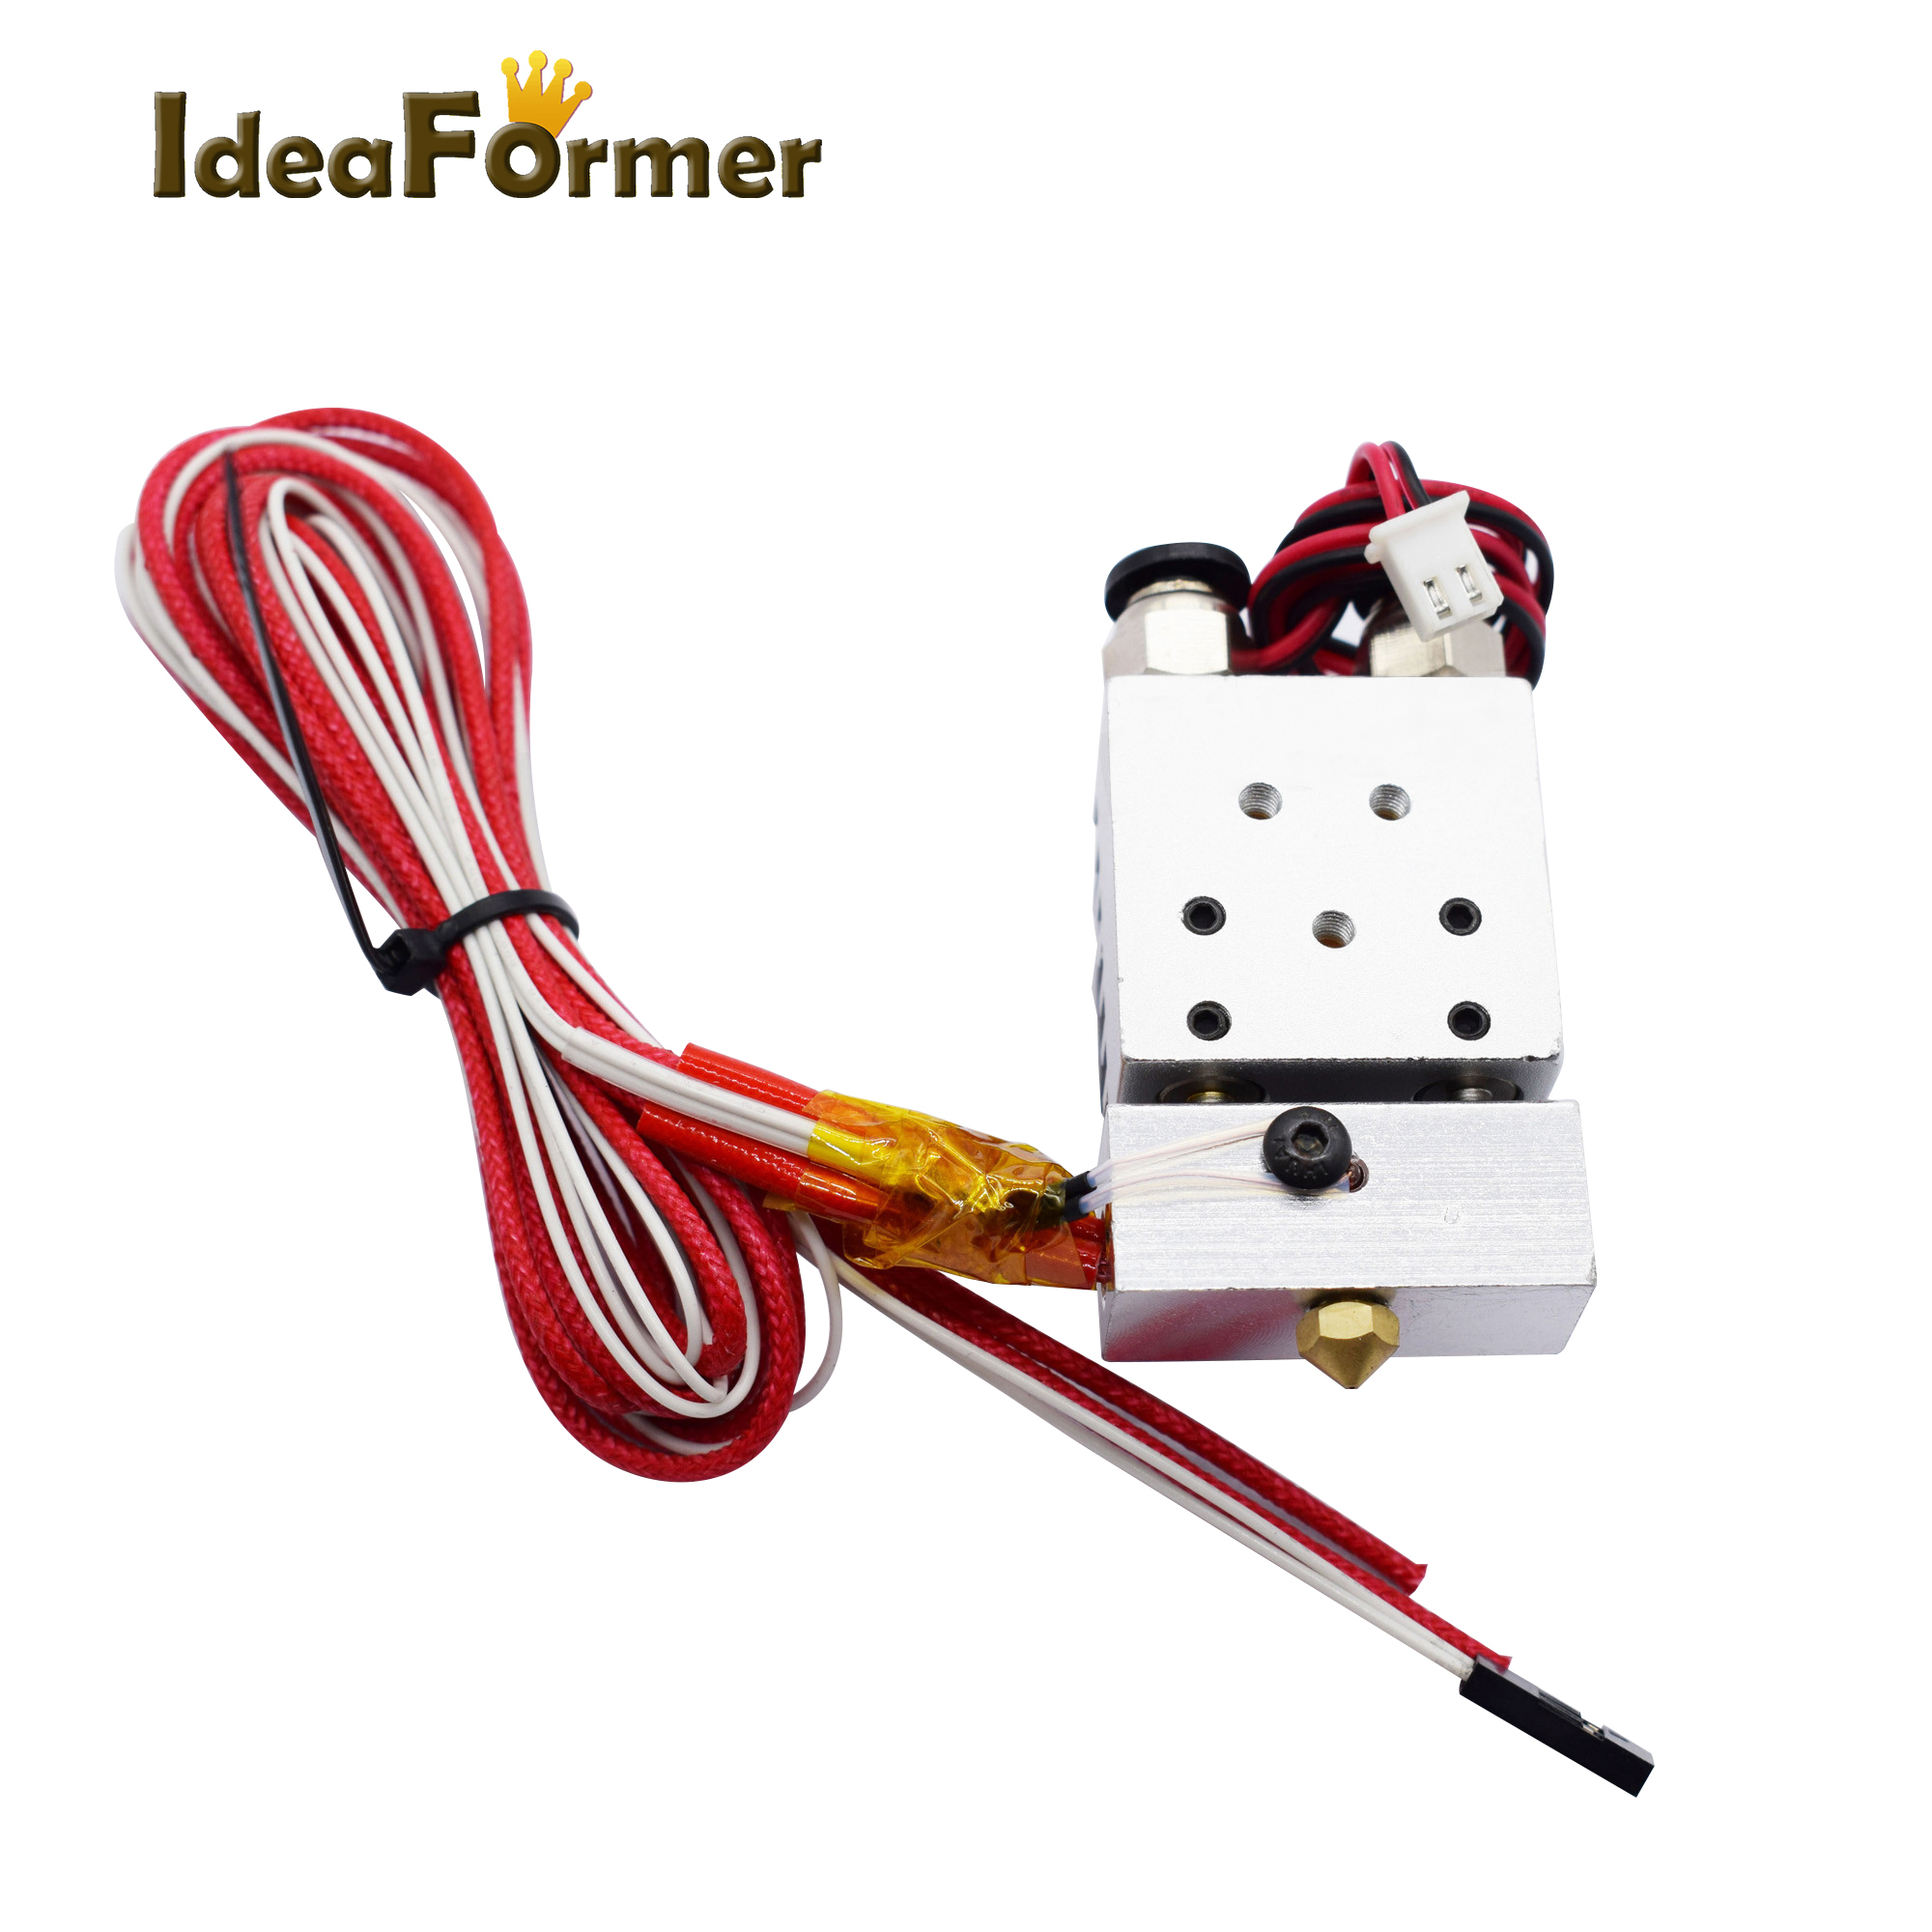 2 In 1 Heraus Bowden Doppel farbe Extruder Cyclops 12 v/24 v Bohrung 0,4mm 1,75mm filament mit lüfter voll kit 3D Drucker teile